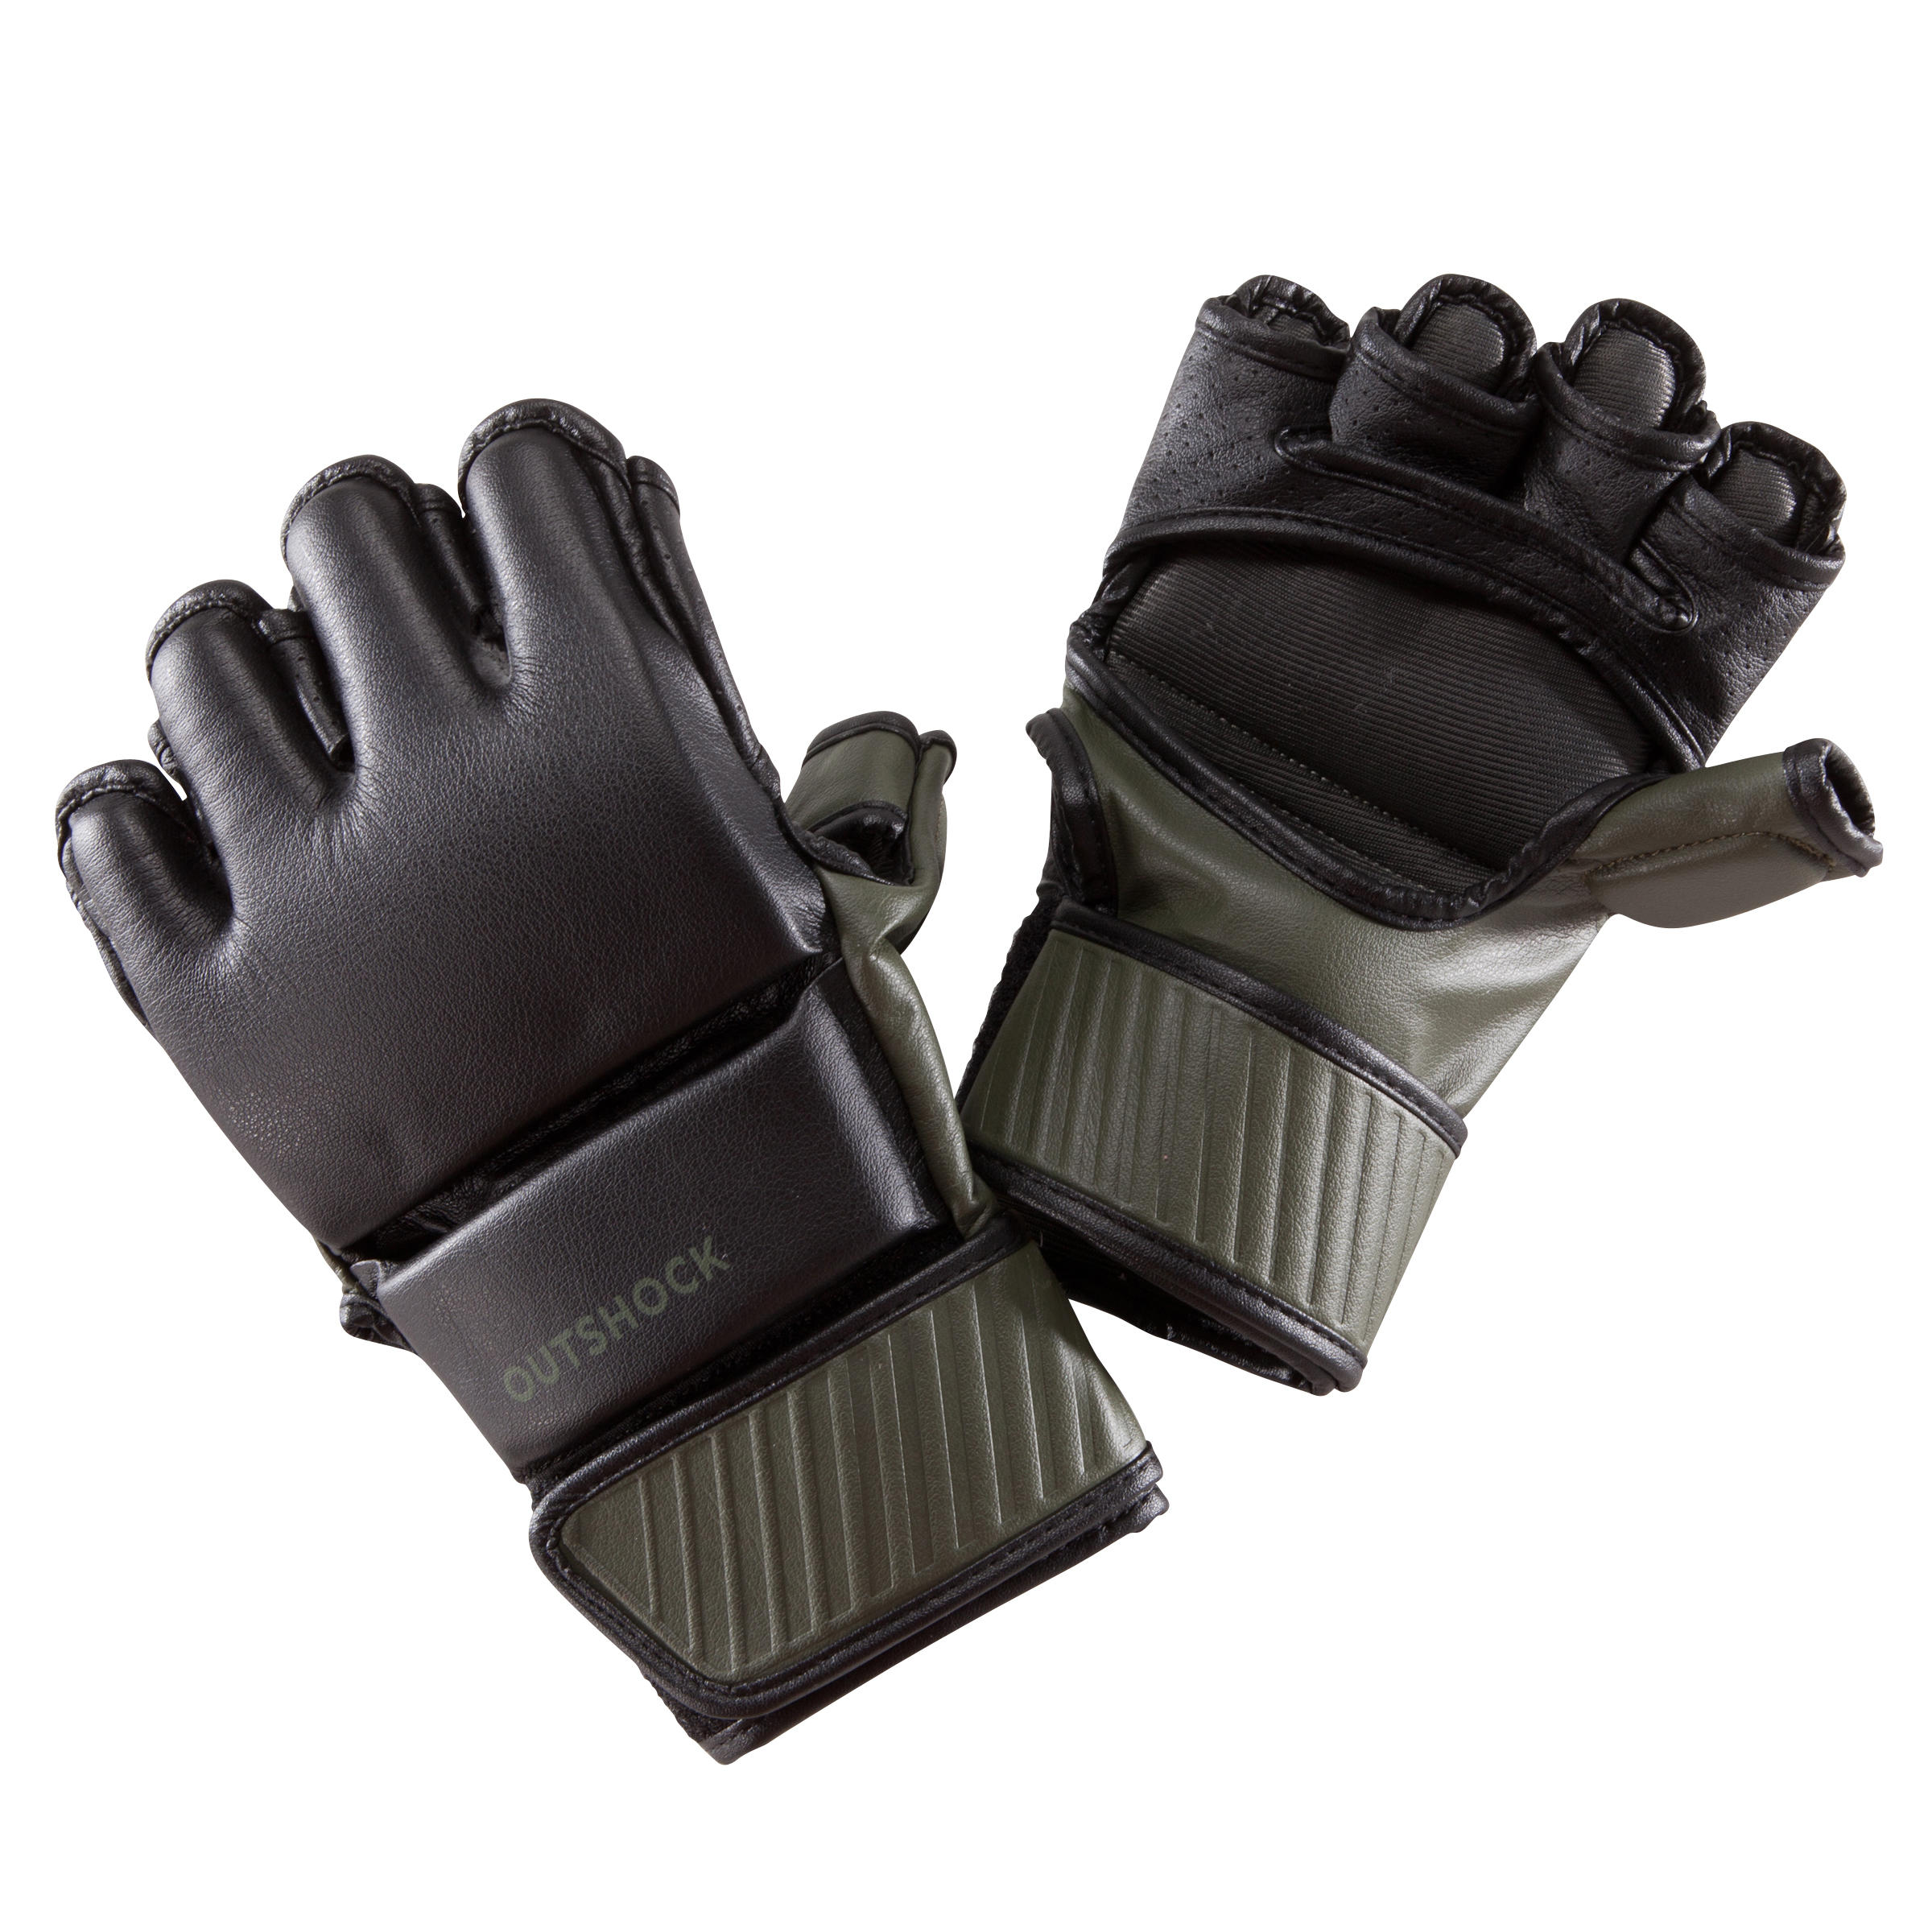 100 Combat Gloves - Black/Khaki